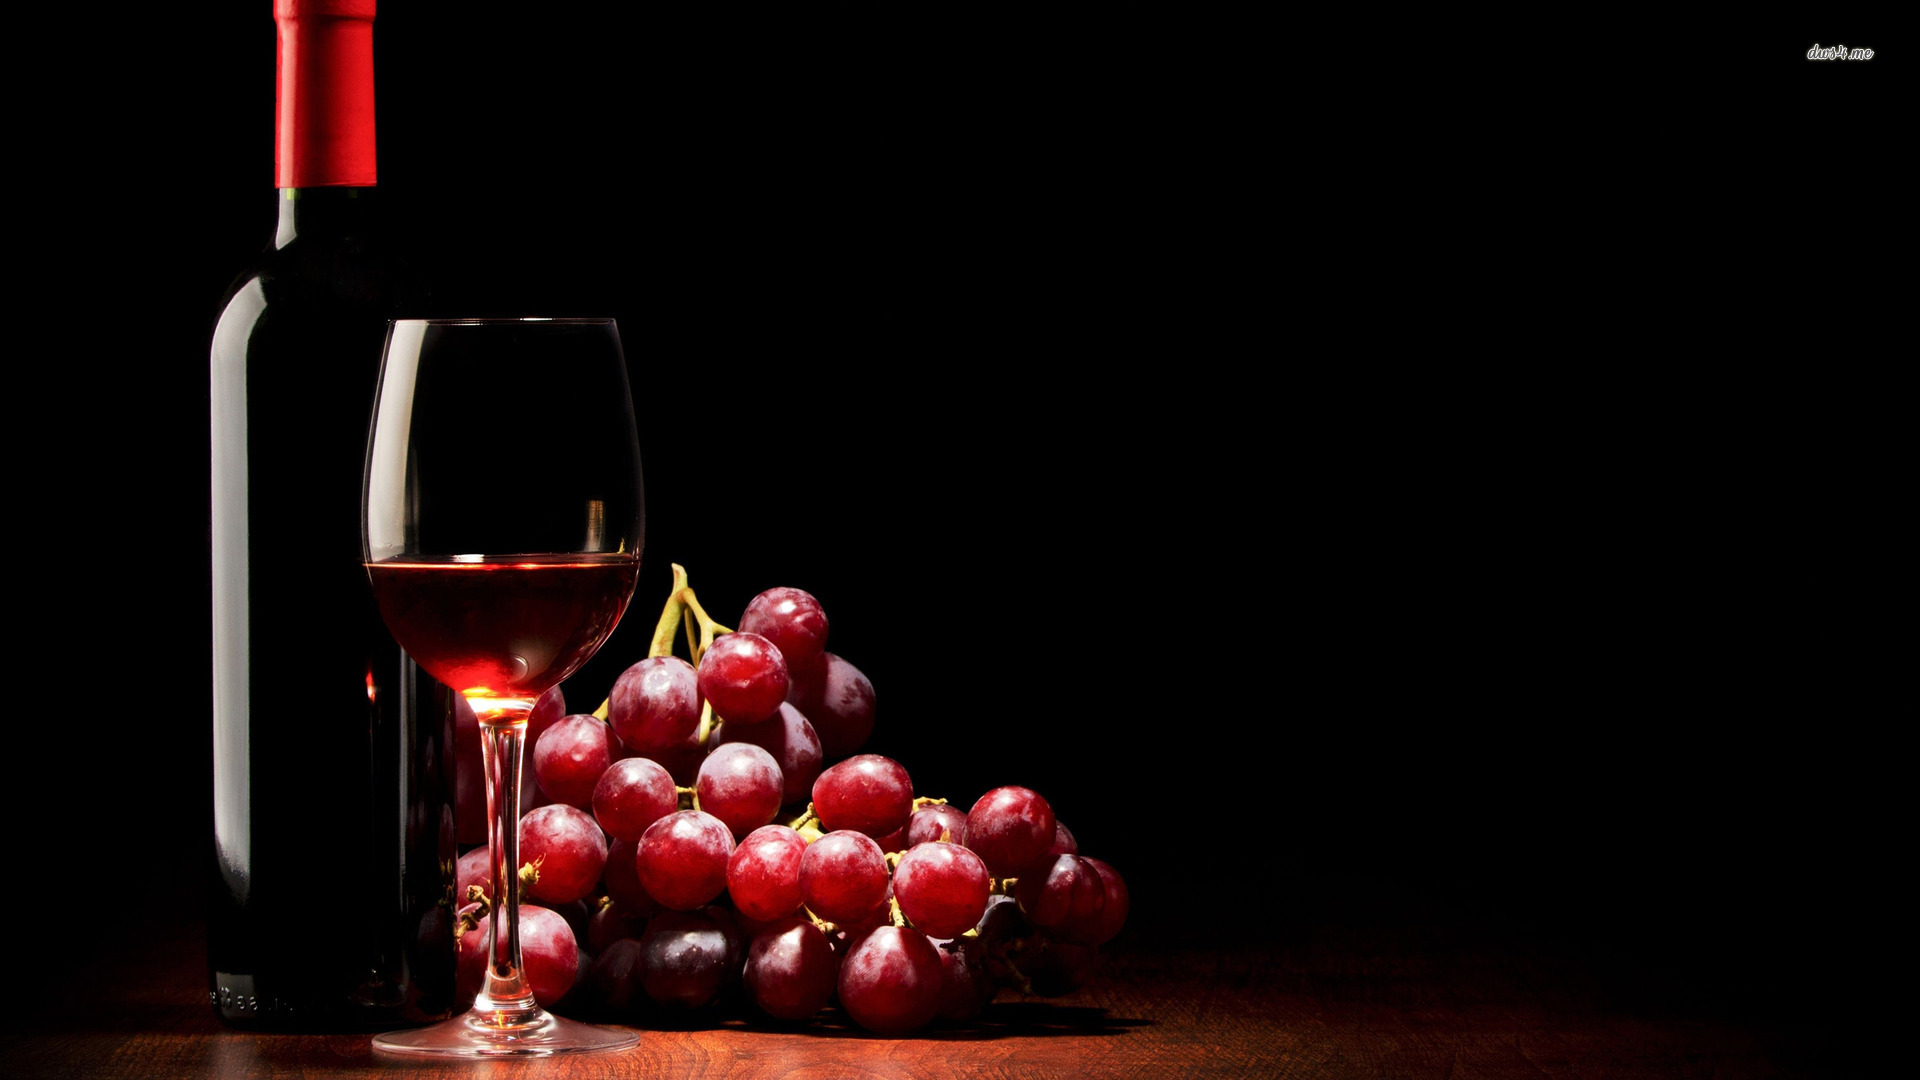 19184-red-wine-and-grapes-1920x1080-photography-wallpaper